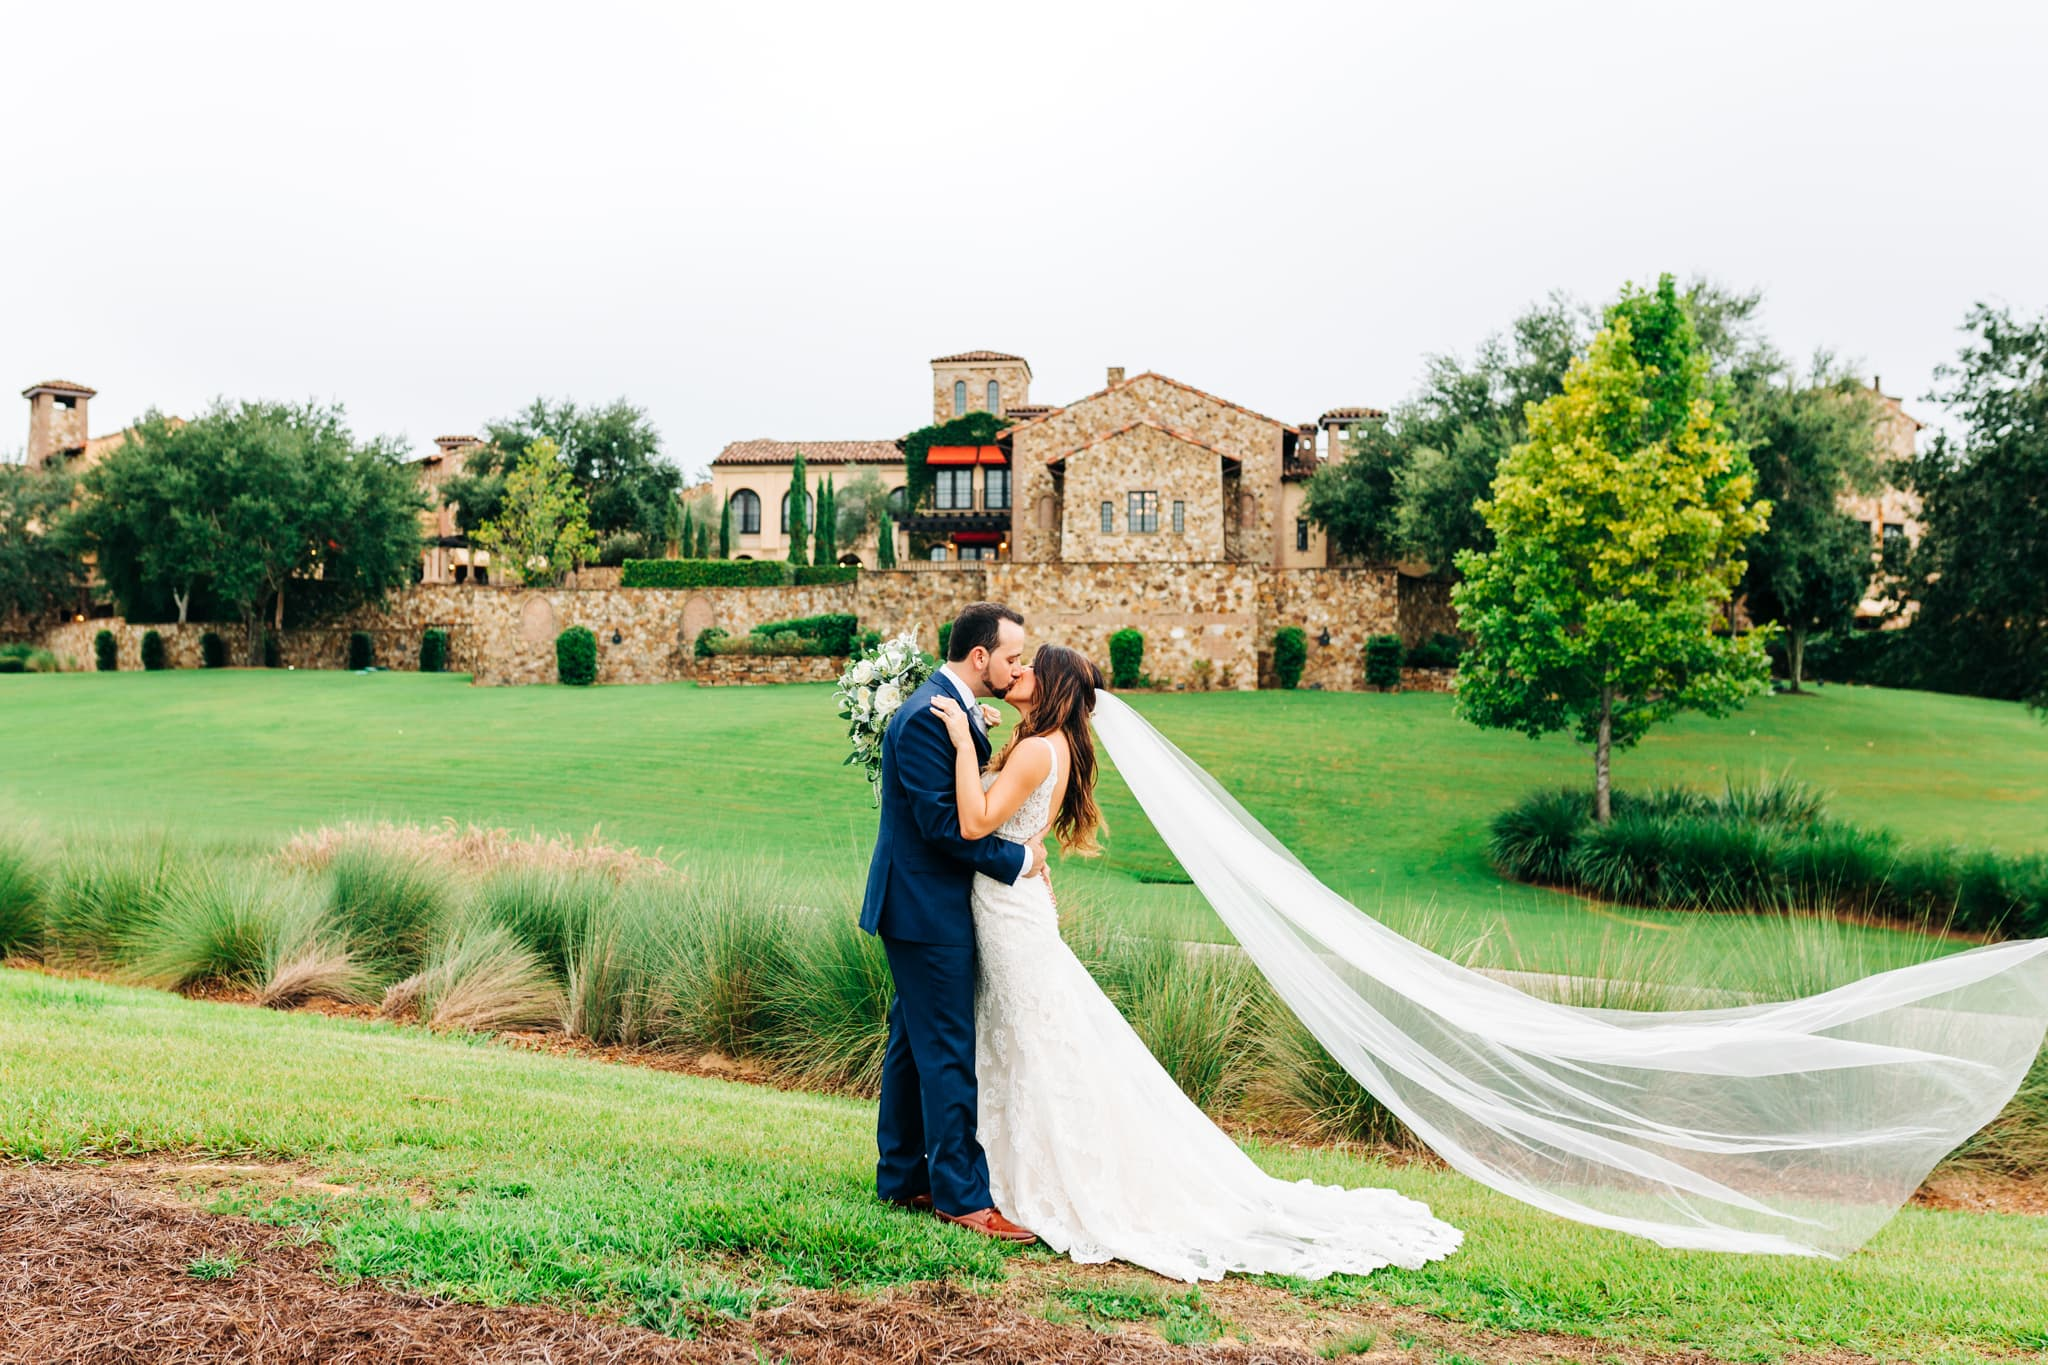 bride with cathedral veil flying in the wind kissing groom on golf course in front of Bella Collina with wedding venue in the background